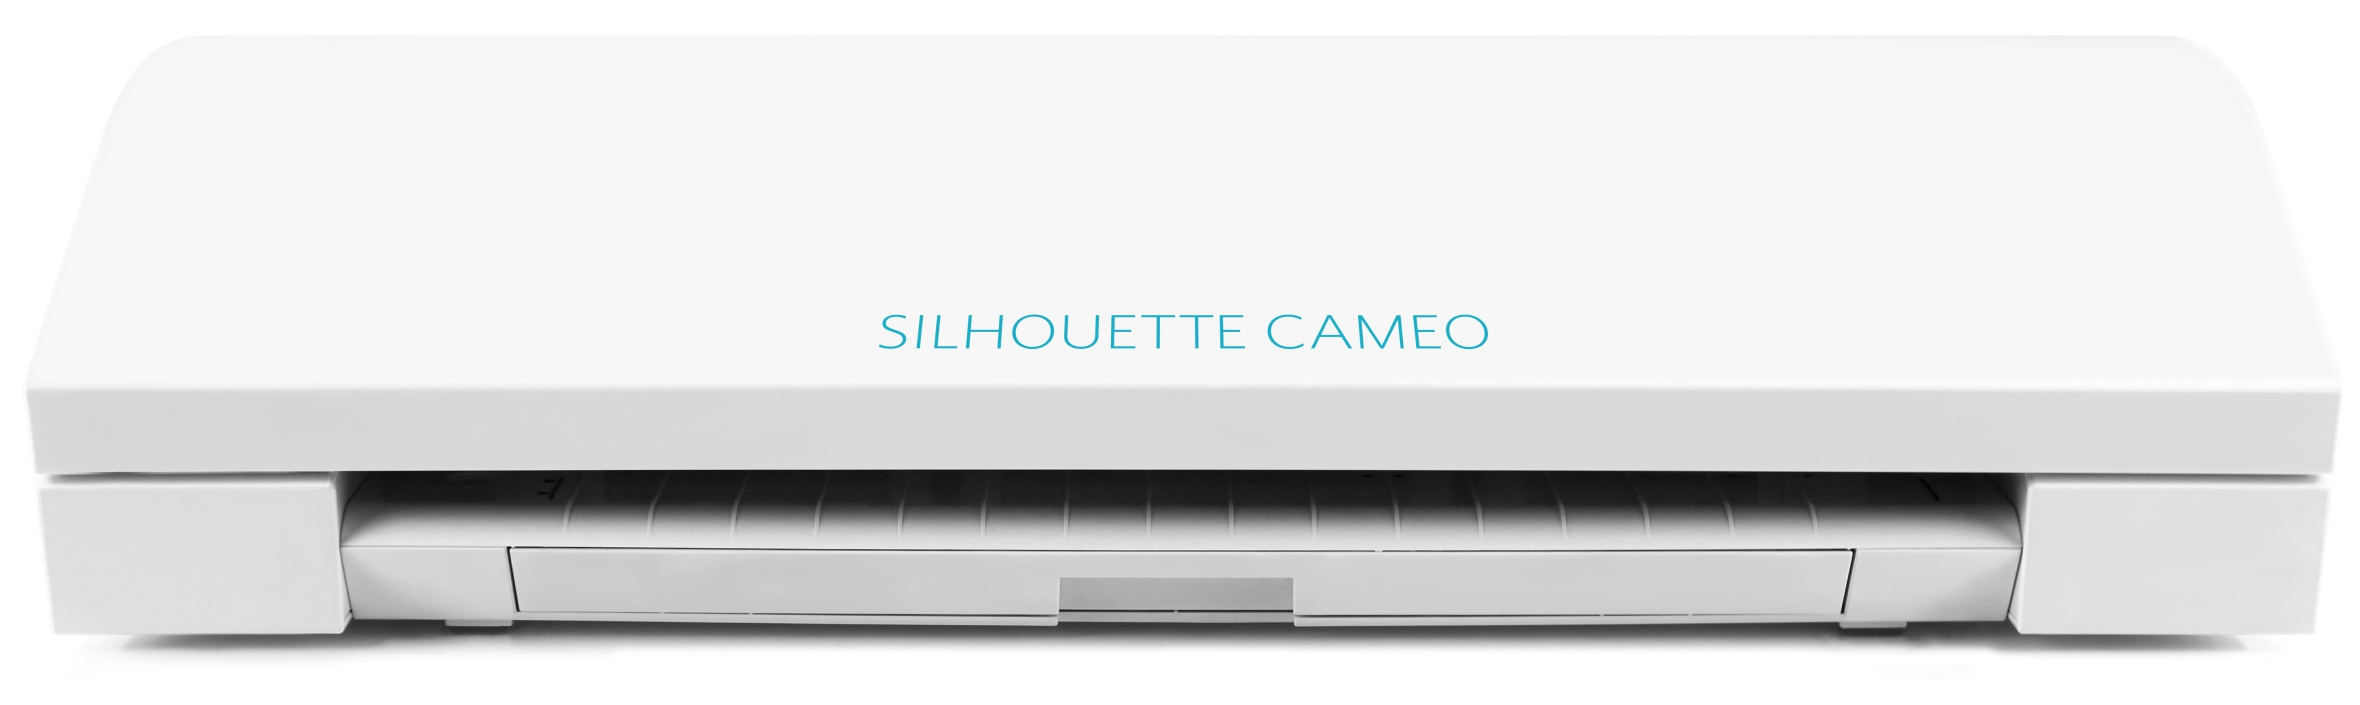 1857_Silhouette Cameo 3 main front.jpg